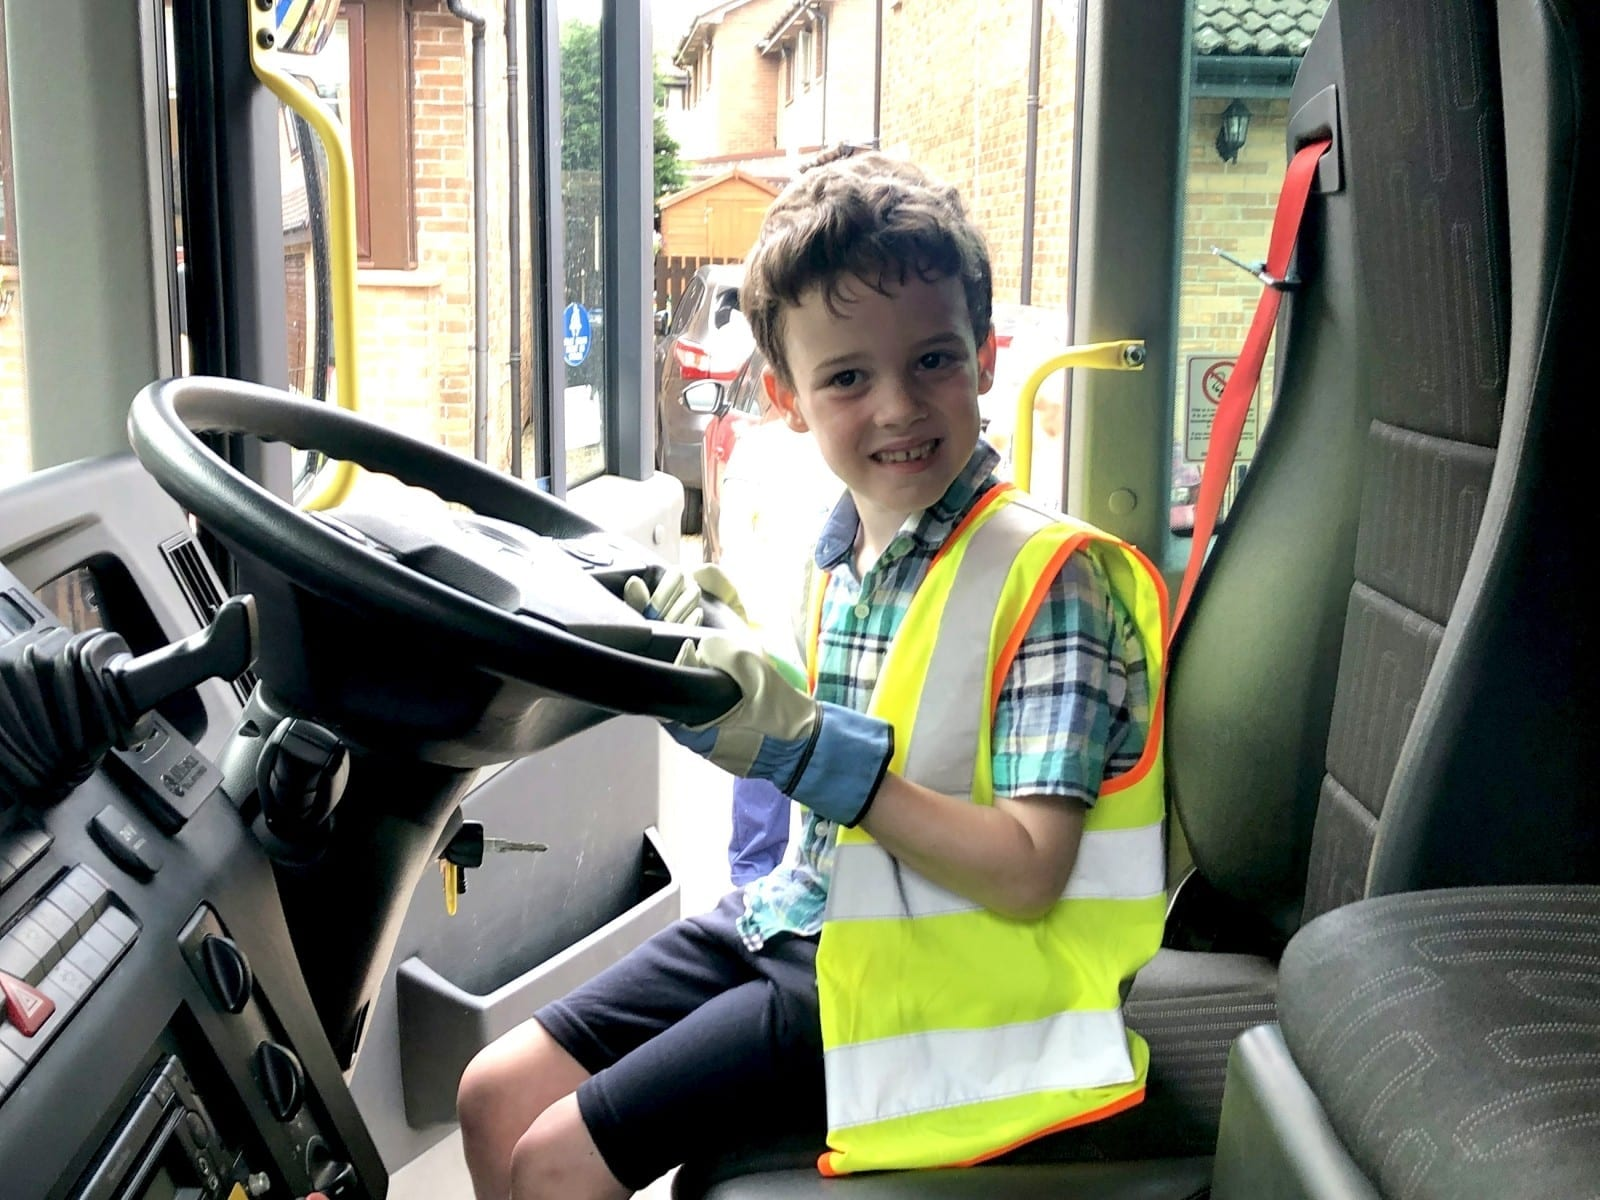 A Schoolboy Obsessed With Bin Lorries Was Delighted When One Turned Up To Take Him Out For A Spin On His Birthday